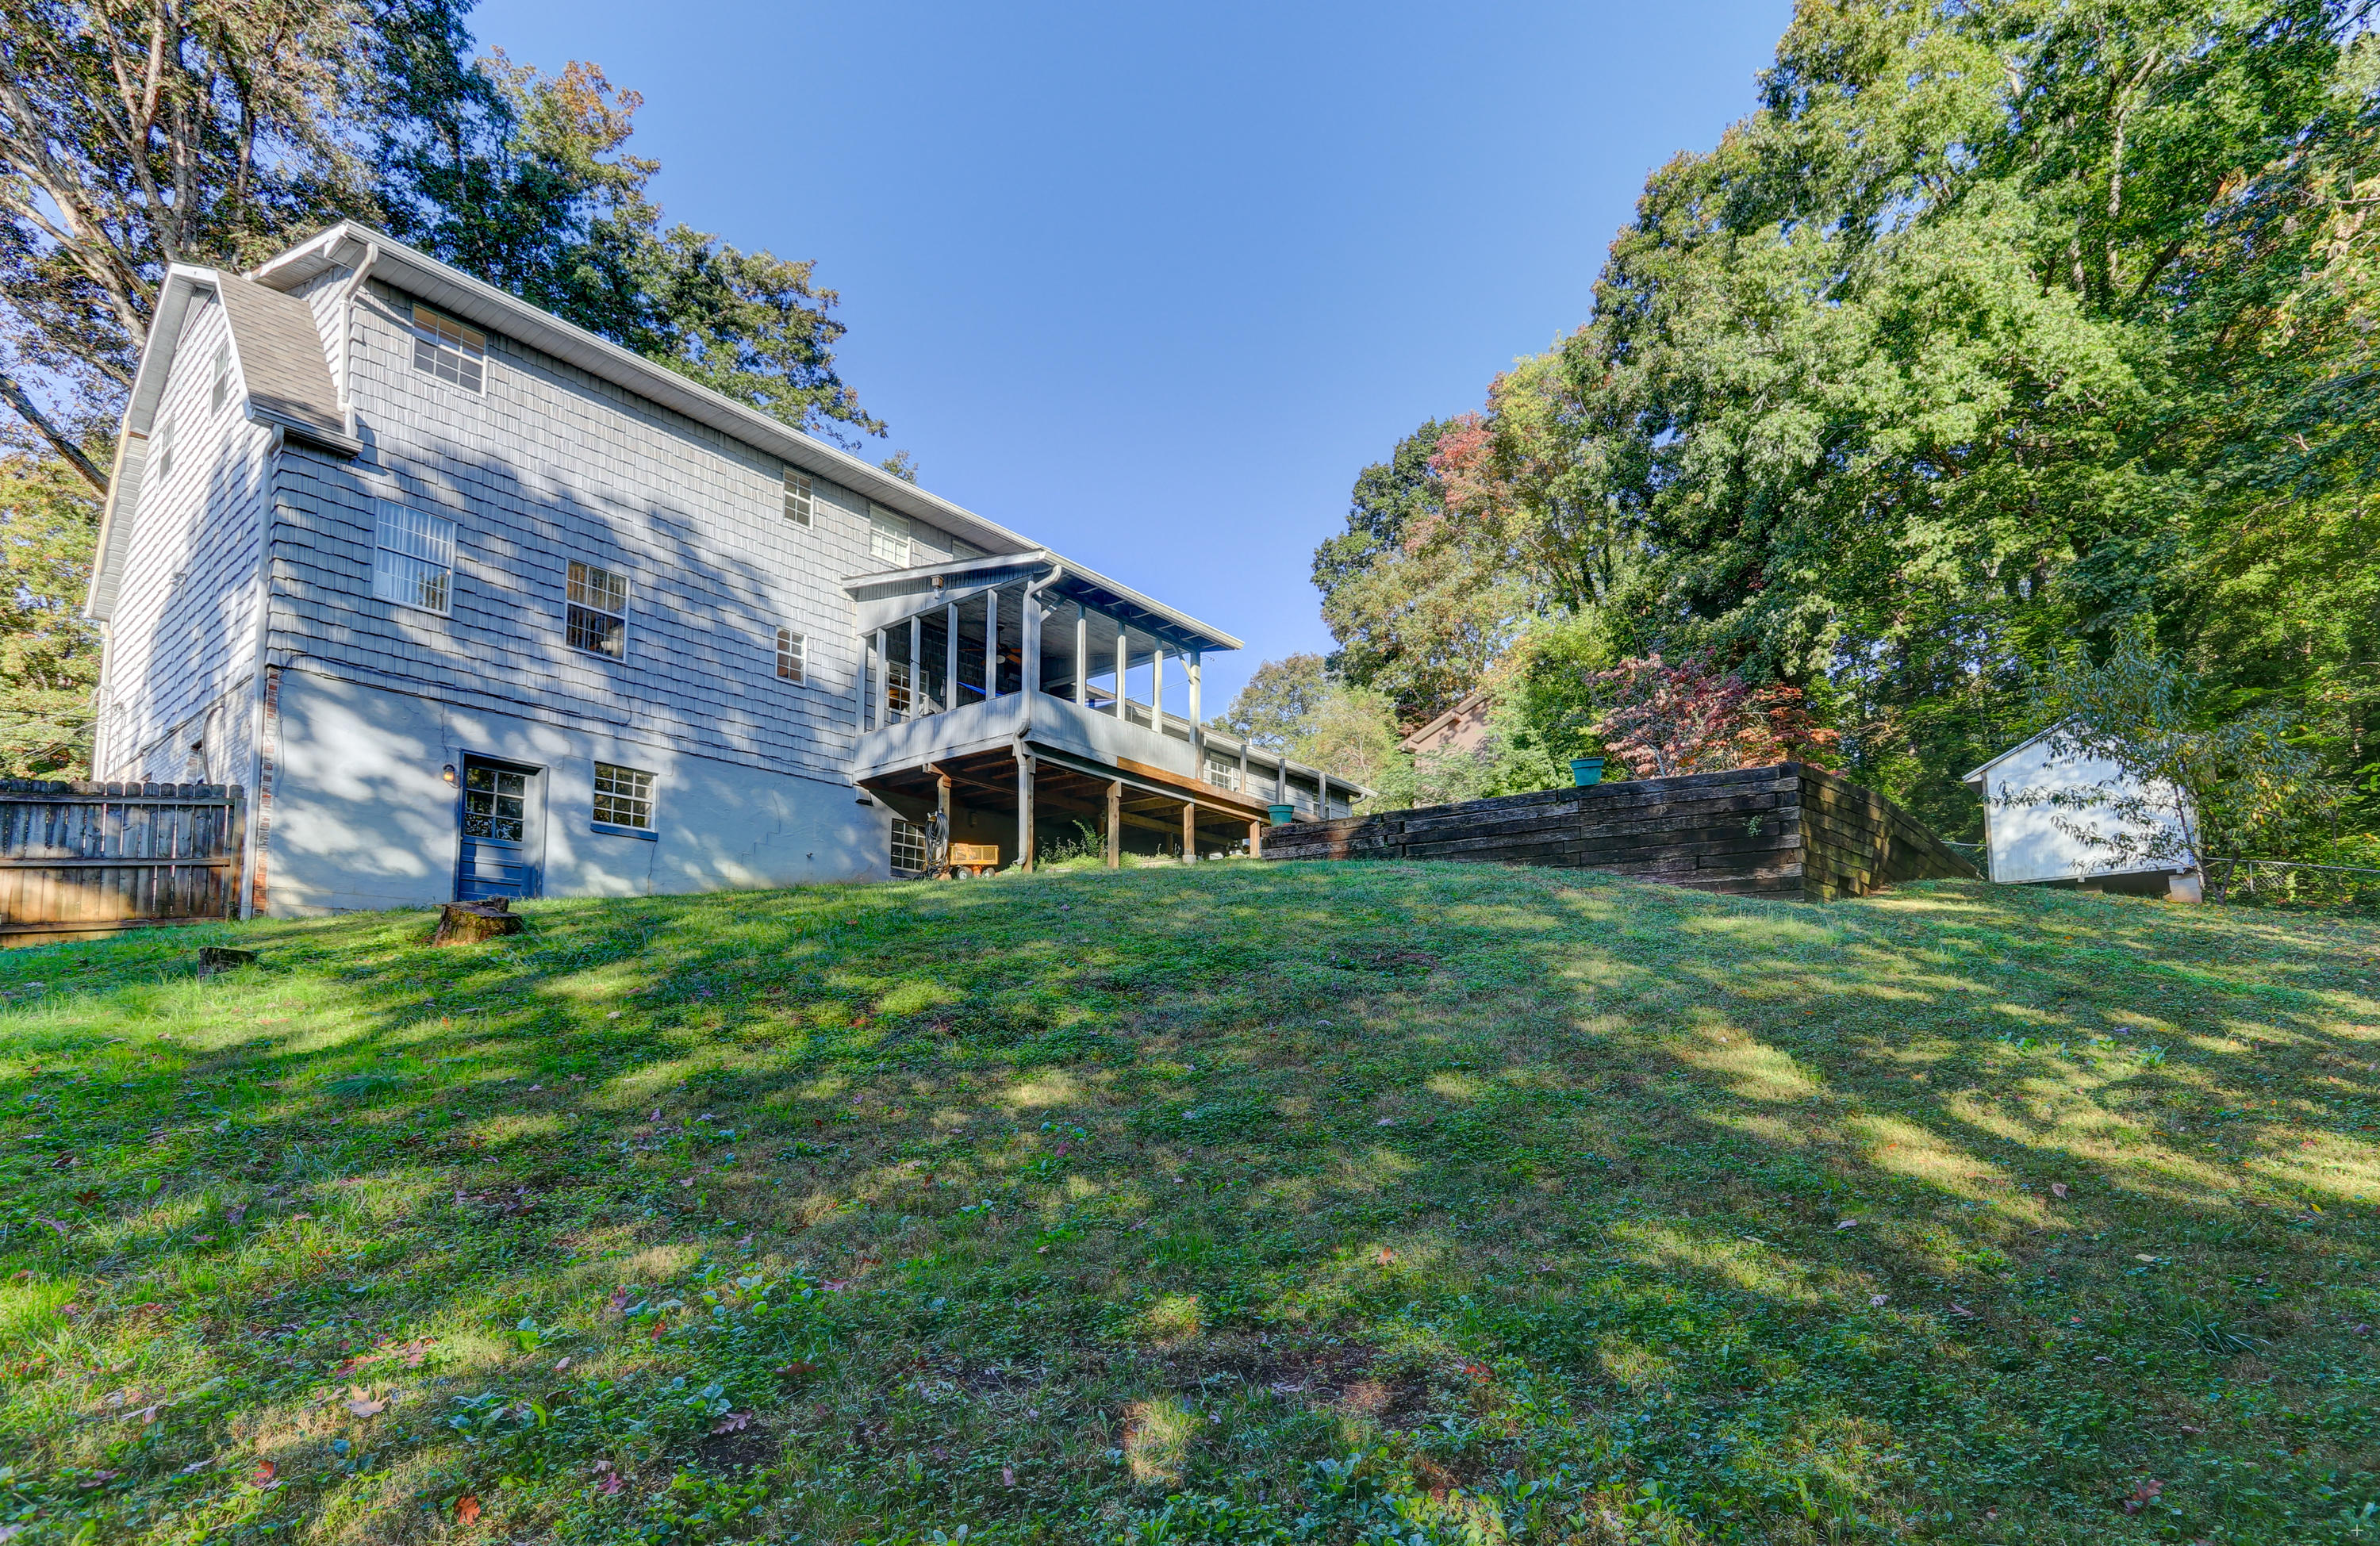 712 Pine Valley Rd, Knoxville, Tennessee 37923, 4 Bedrooms Bedrooms, ,2 BathroomsBathrooms,Single Family,For Sale,Pine Valley,1133157